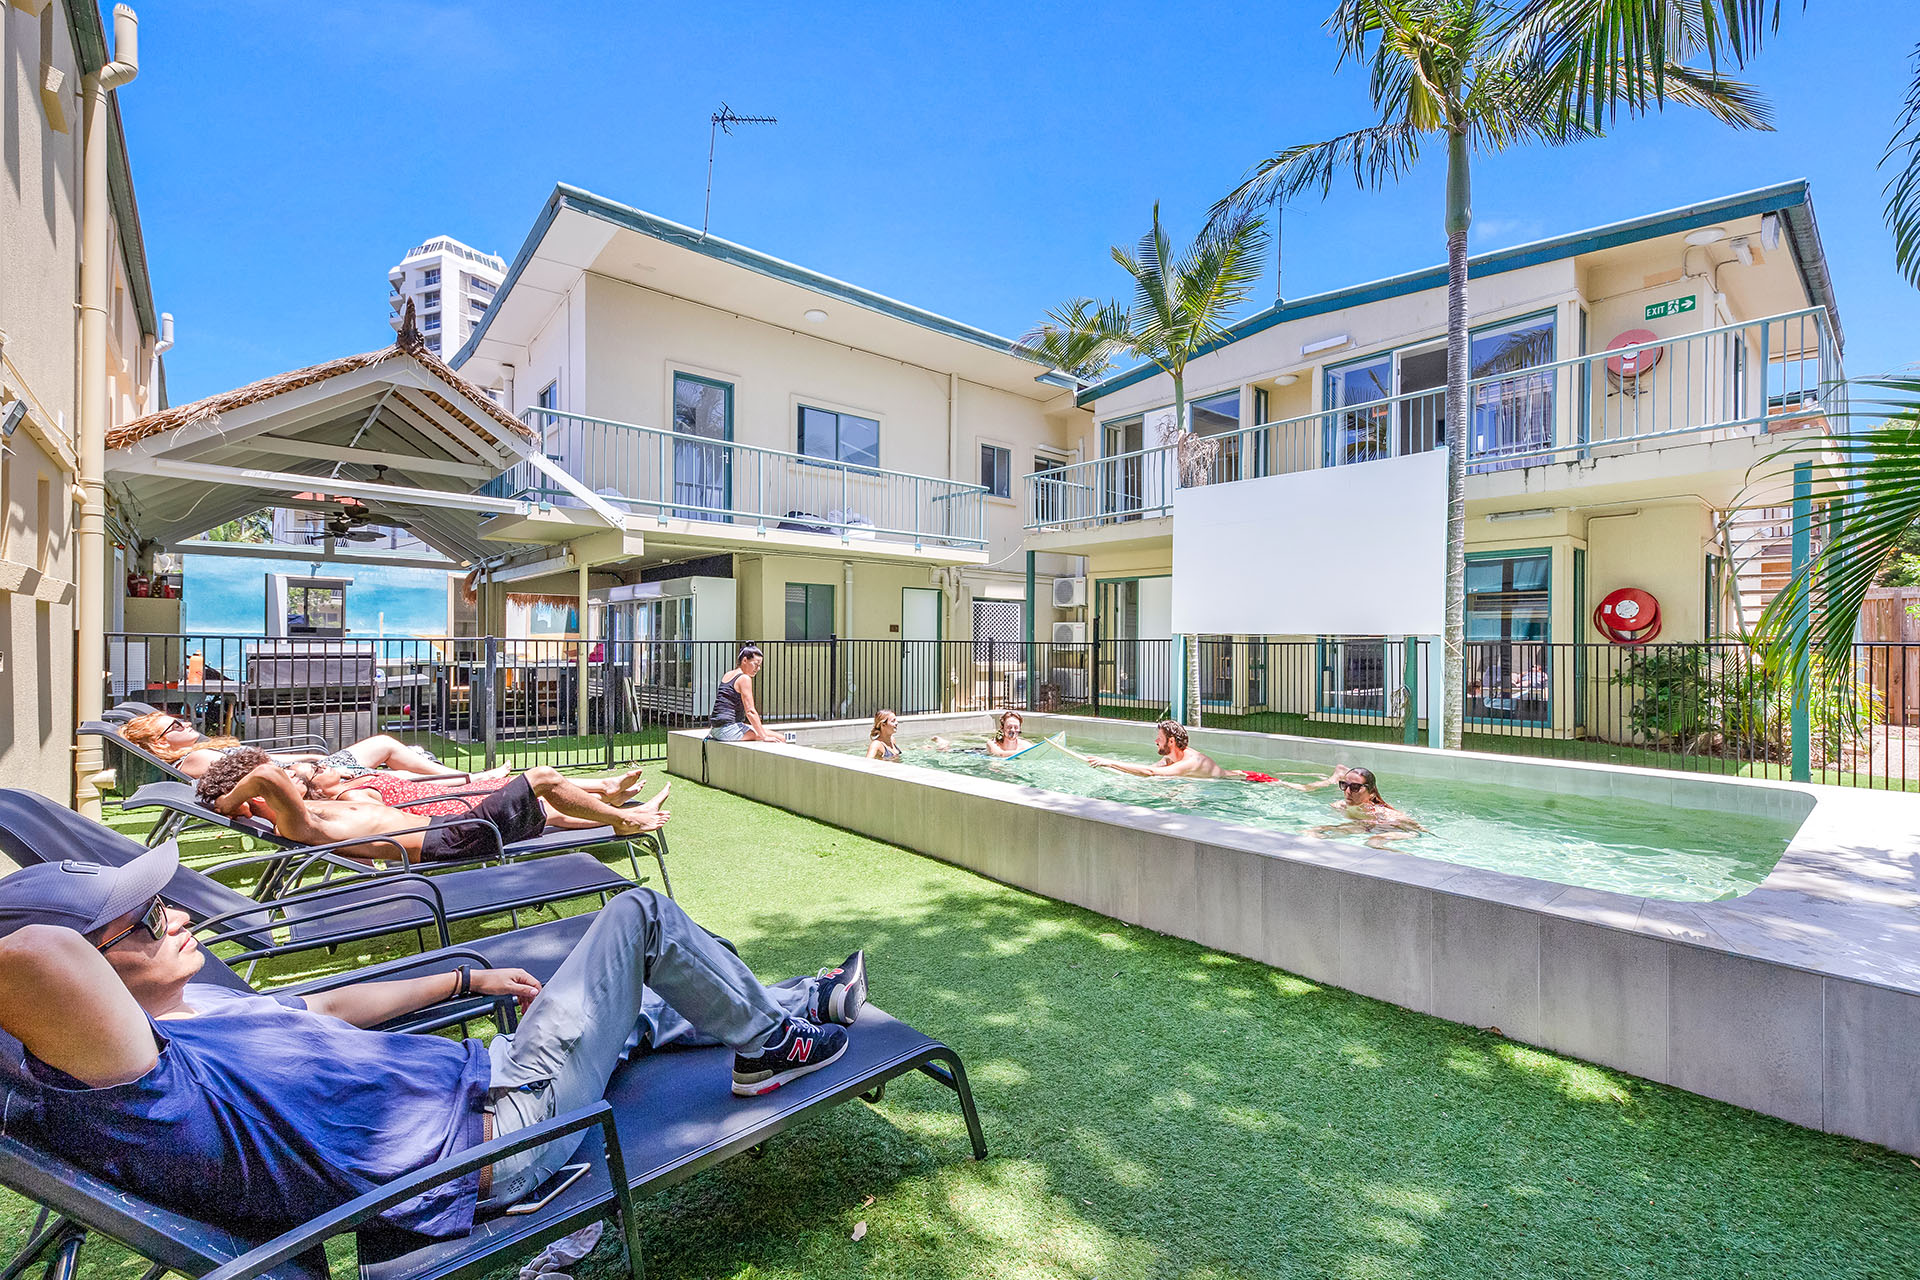 Step Inside the Gold Coast's Coolest Renovated Hostel